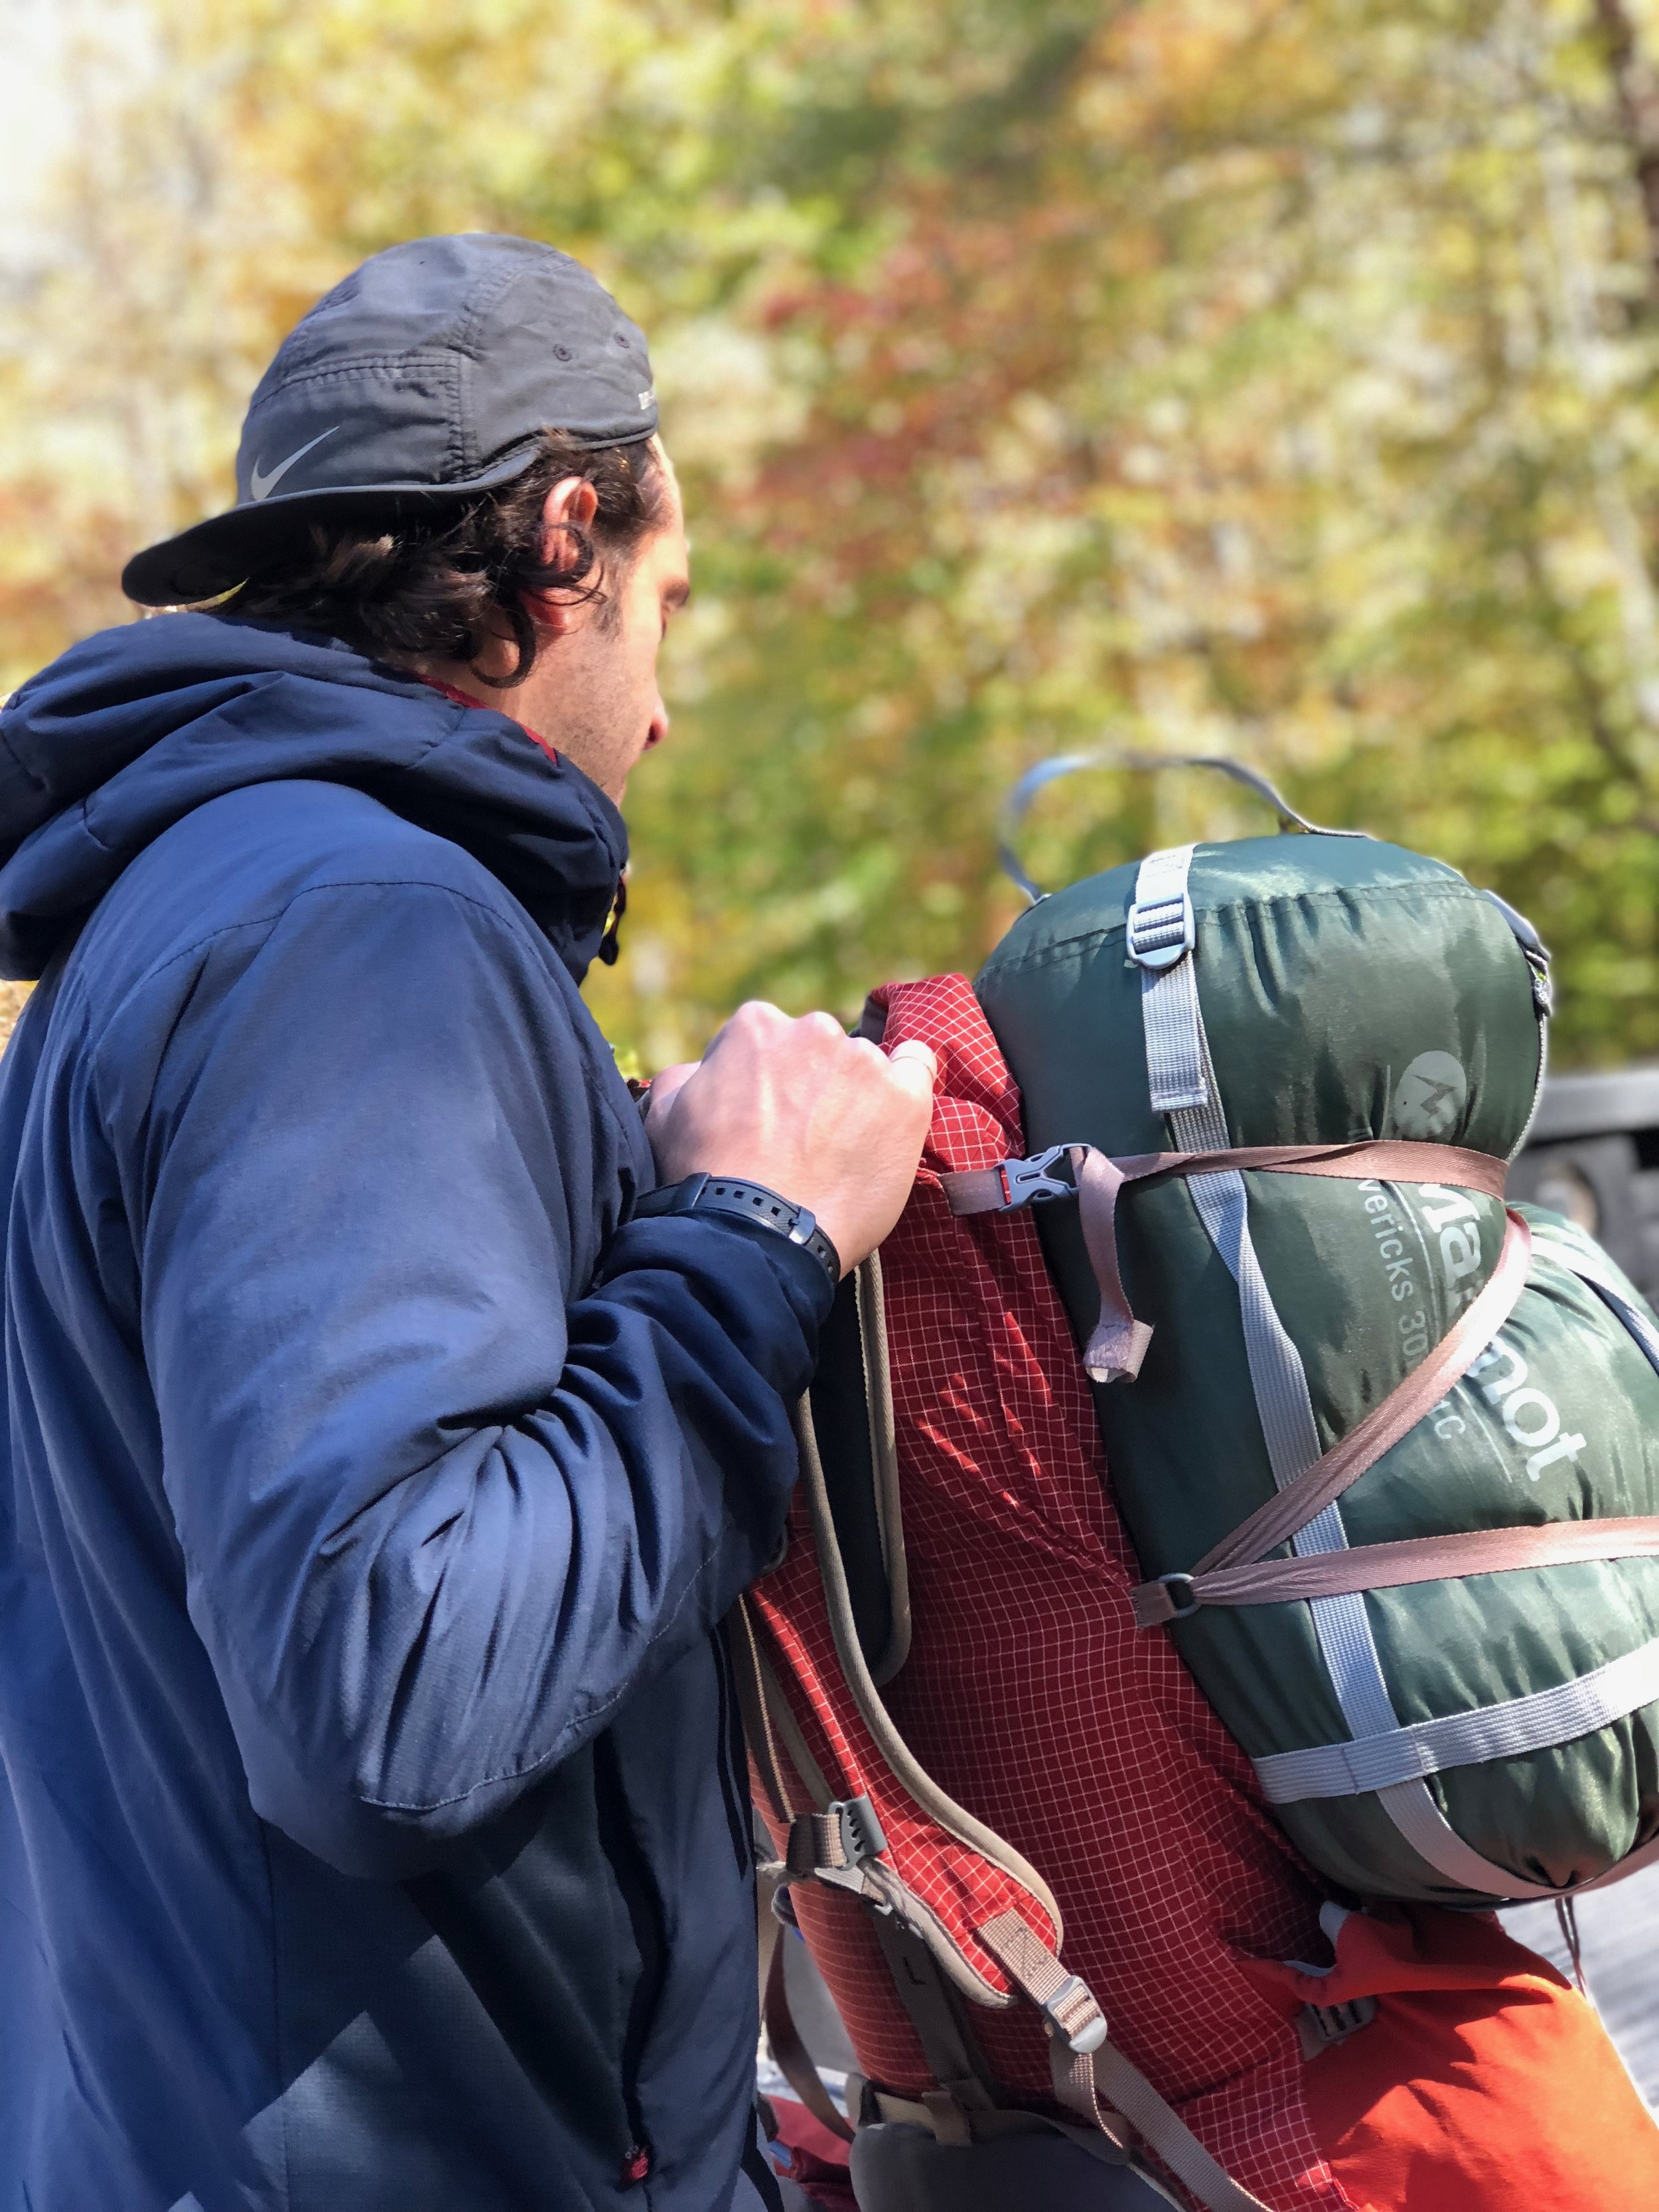 Don't forget to pack a sleeping bag! We have Marmot sleeping bags for the whole family available to rent at TB&C.